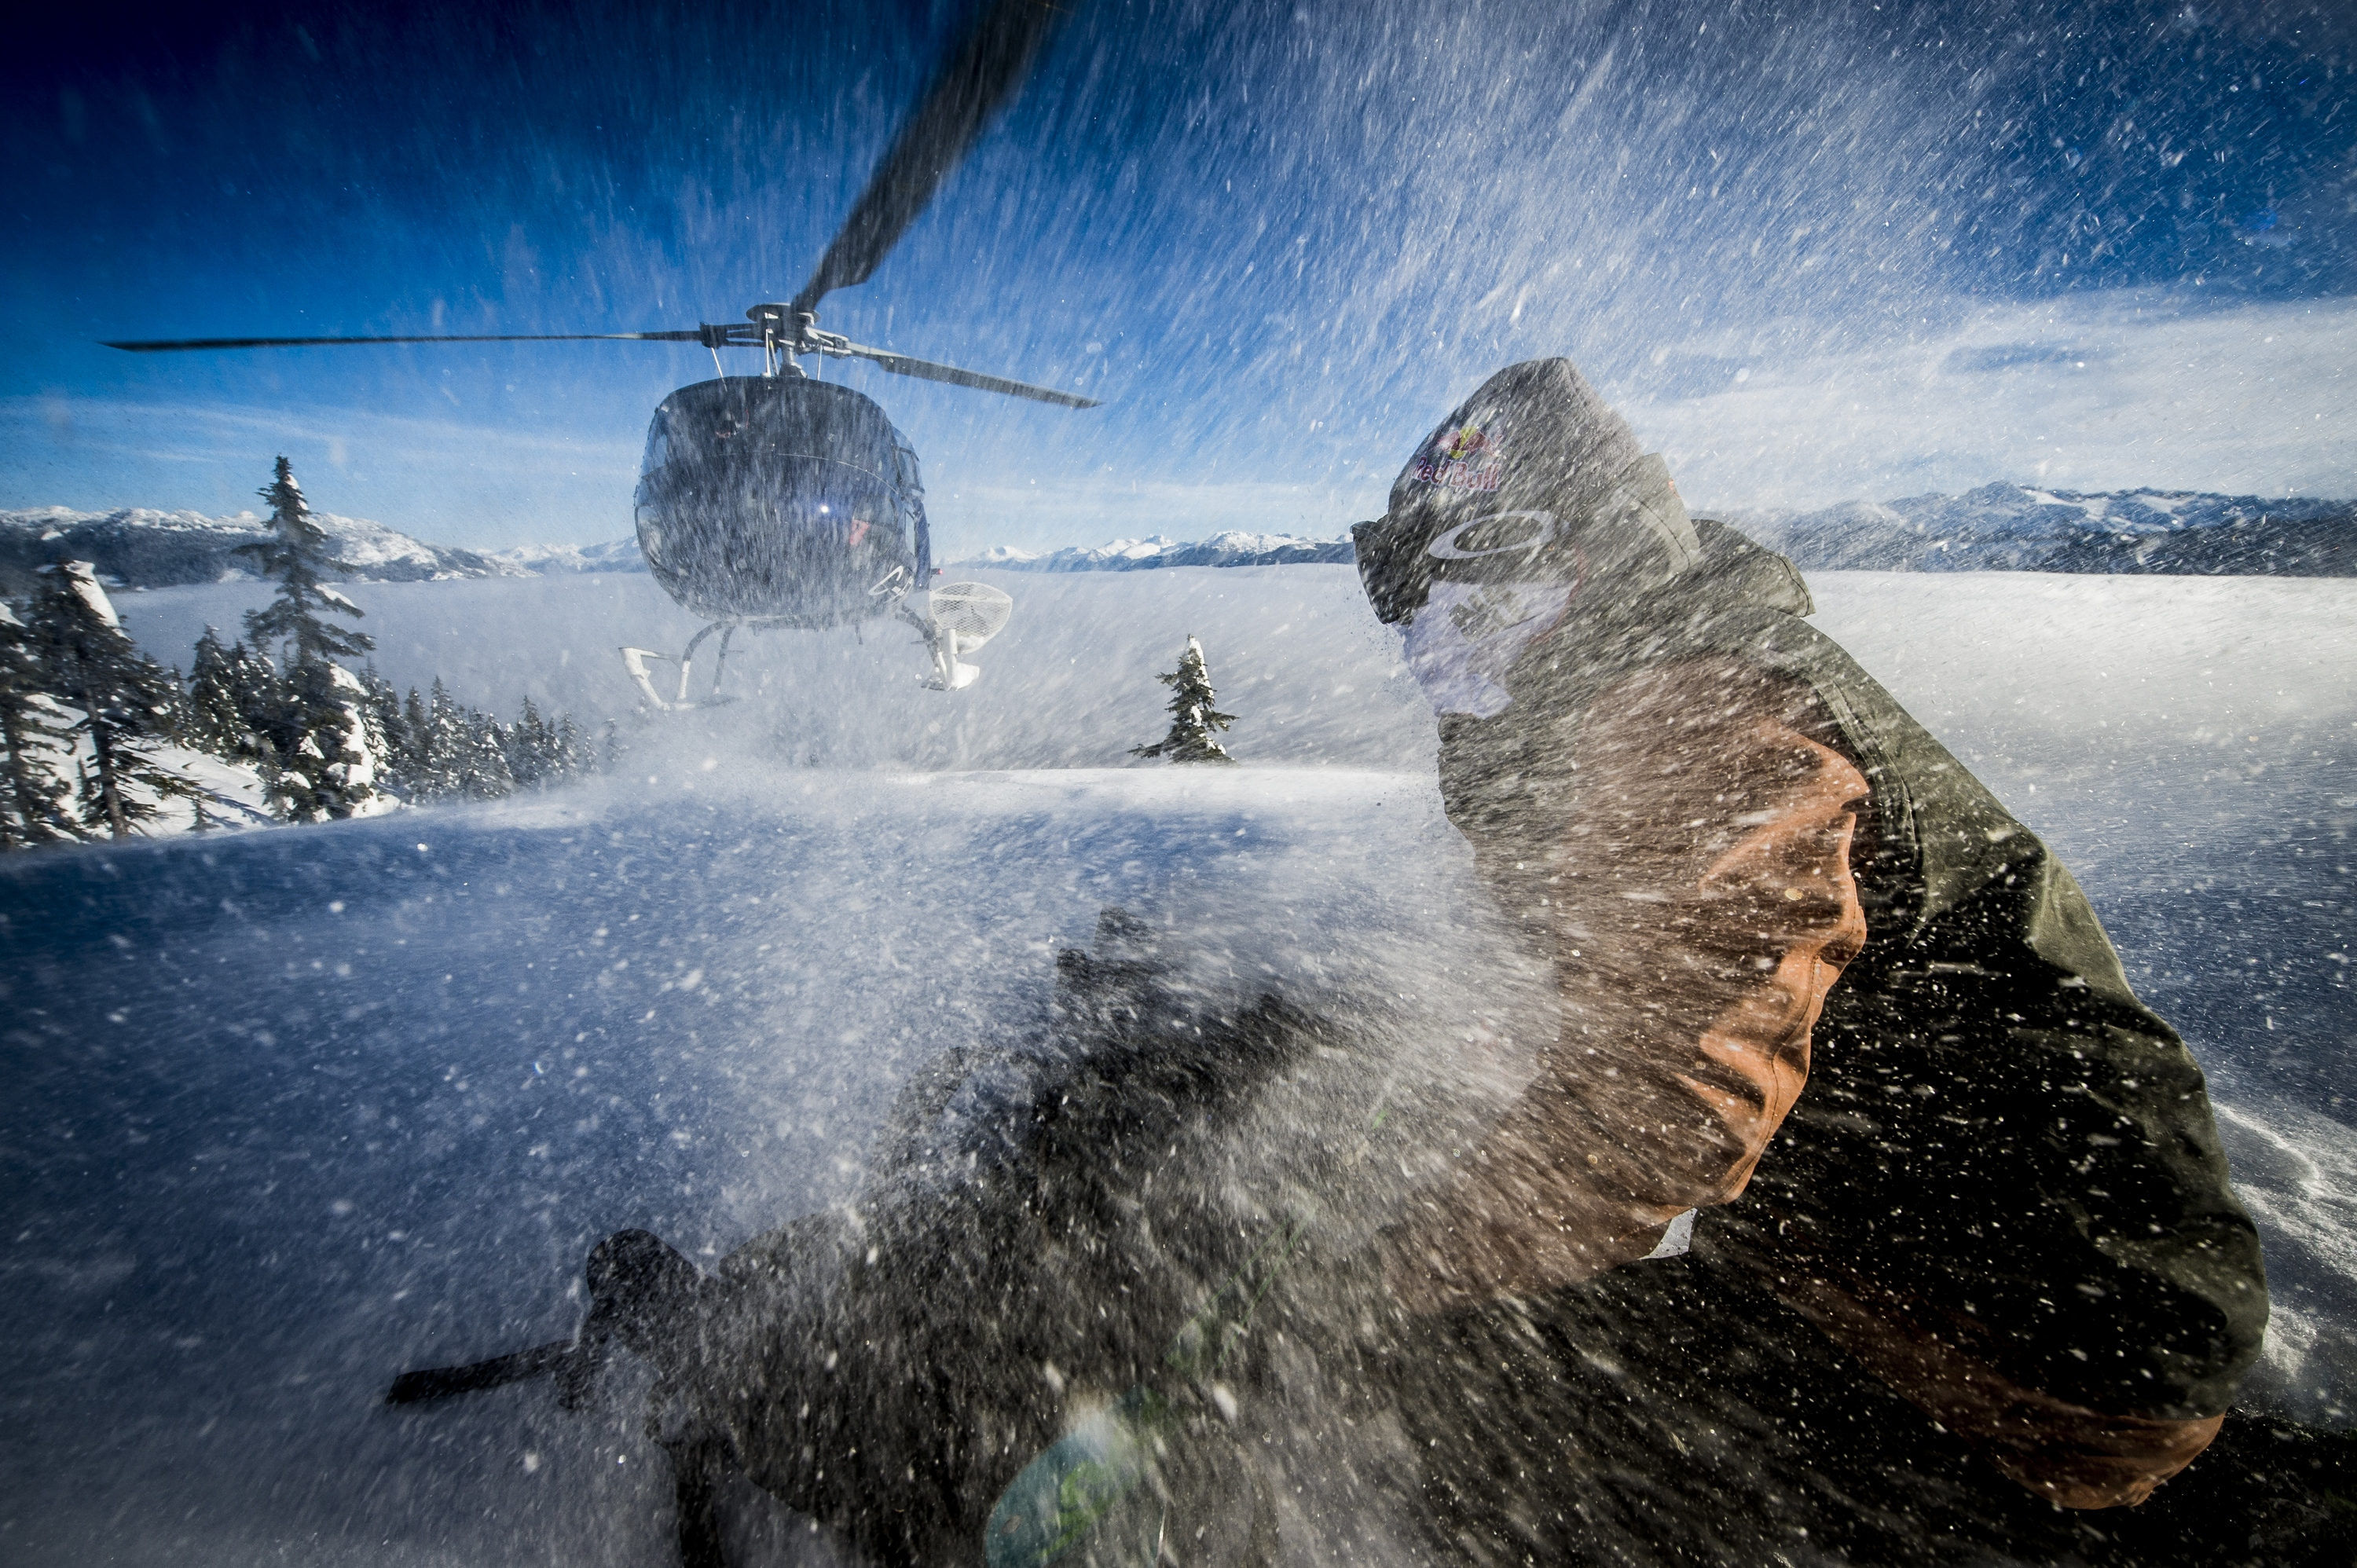 In the Whistler backcountry of British Columbia. (file photo: Red Bull Media House)